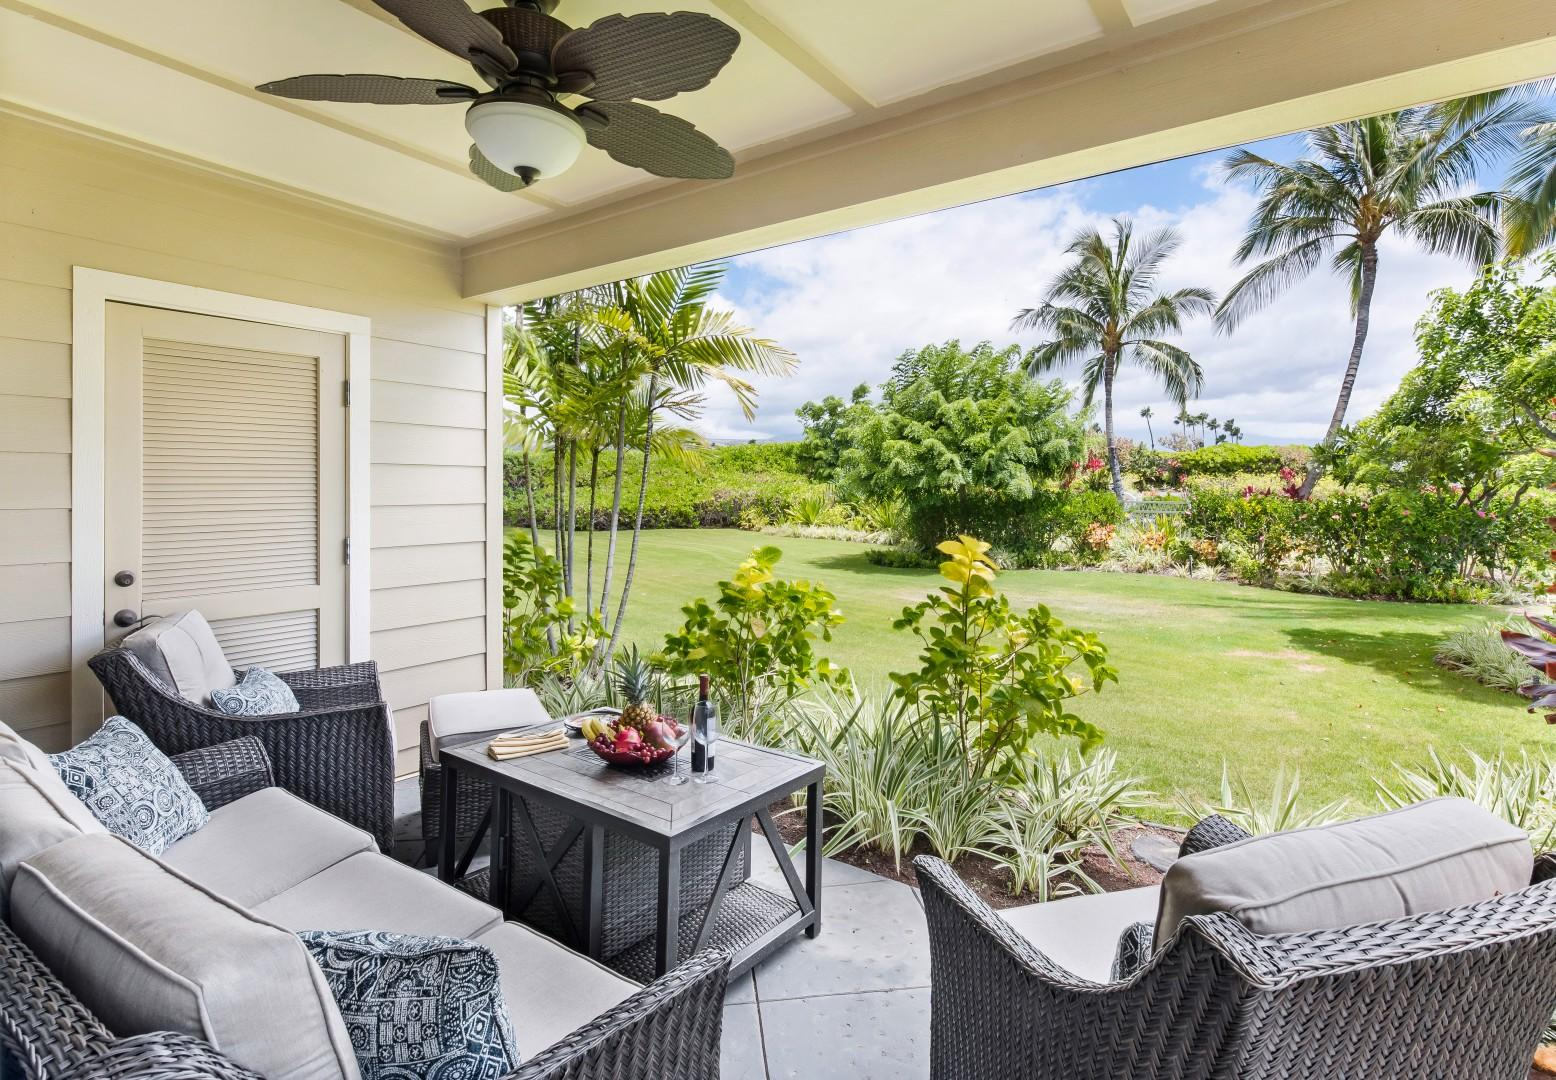 Lanai Off of Living Room Offers a Peaceful Place to Relax Just Steps Across the Soft Grass From the Pool